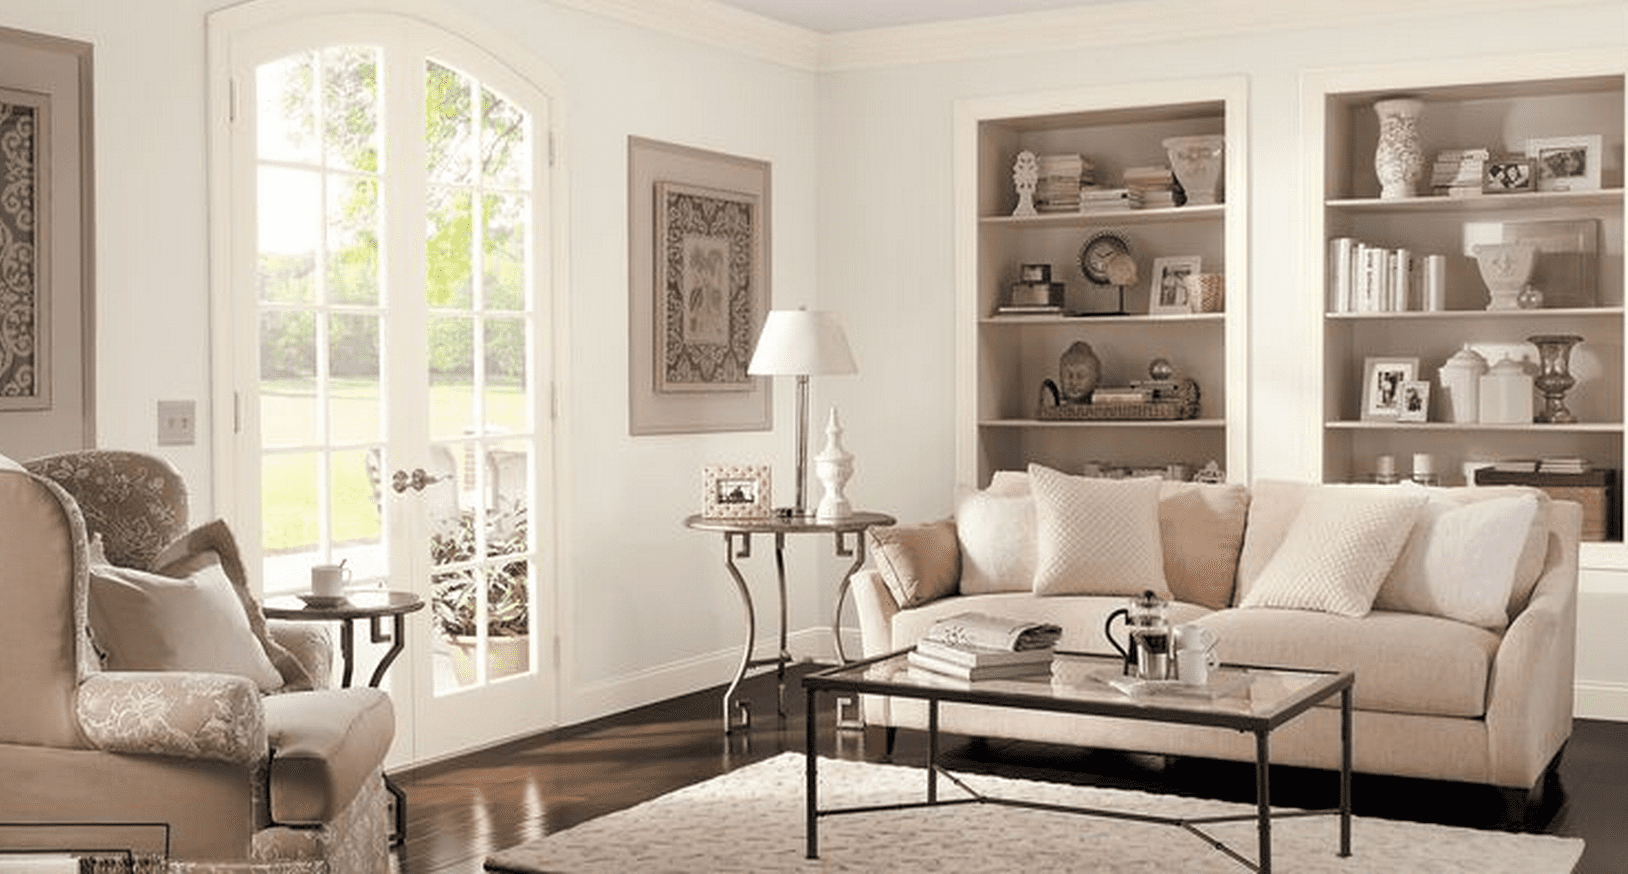 Check out some of the best behr paint color ideas for a small room. 10 Best Behr Paint Colors for the Family Room